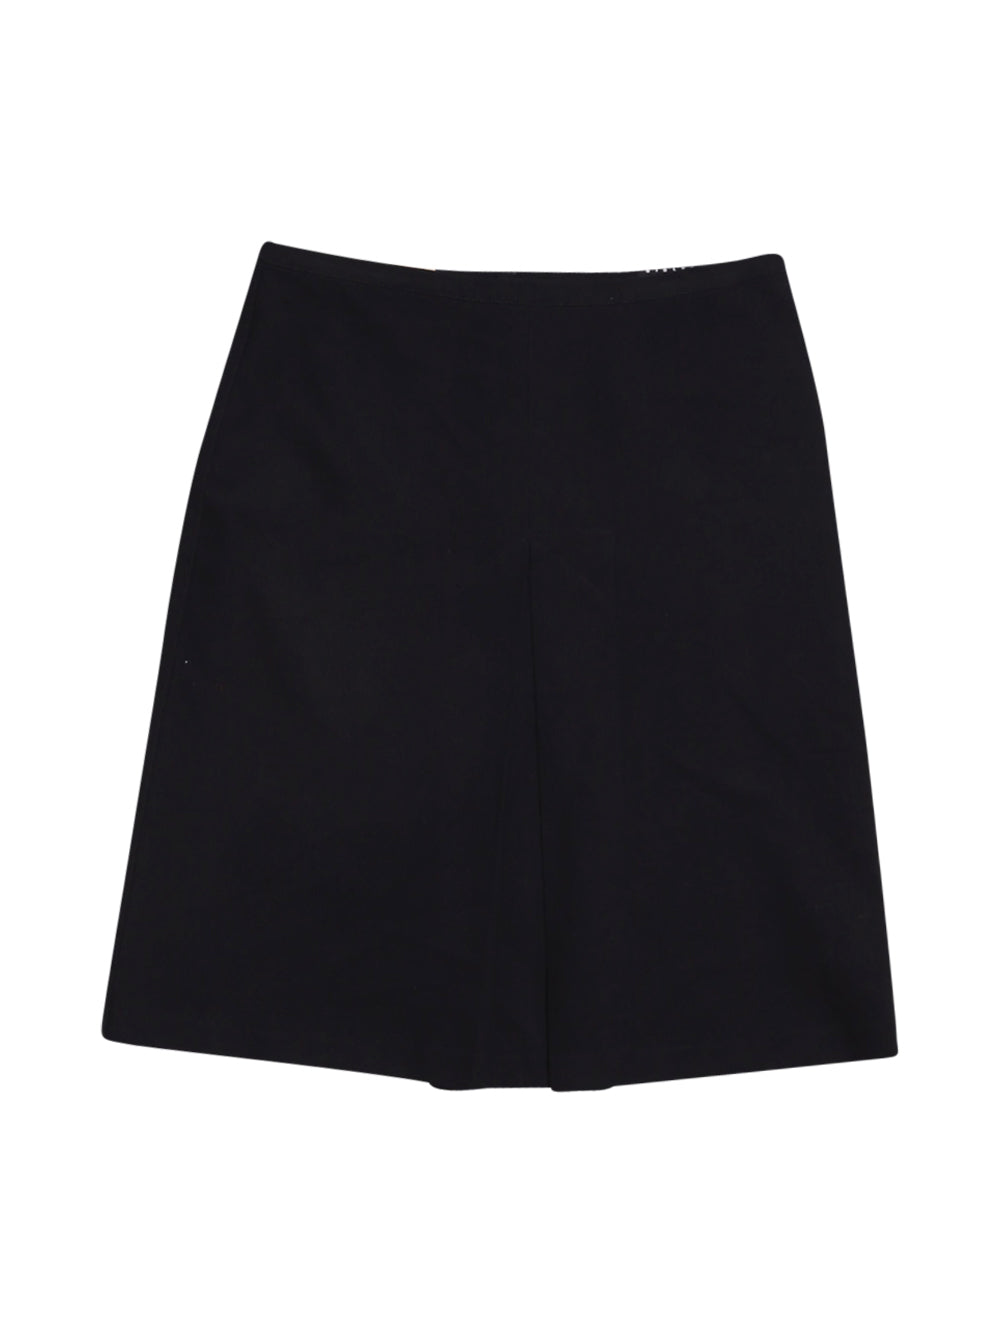 Front photo of Preloved Sisley Black Woman's skirt - size 12/L